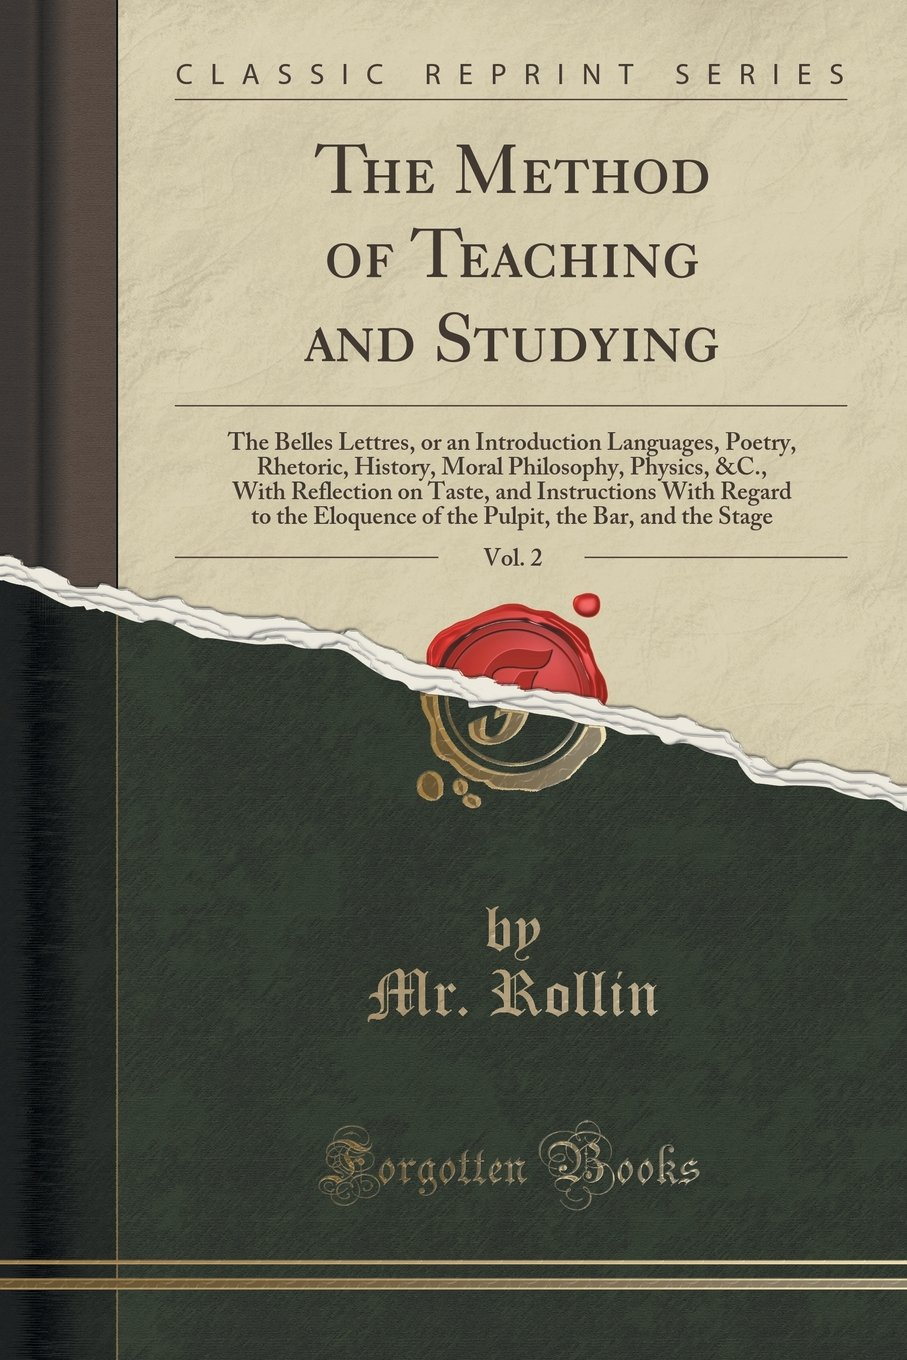 Download The Method of Teaching and Studying, Vol. 2: The Belles Lettres, or an Introduction Languages, Poetry, Rhetoric, History, Moral Philosophy, Physics. the Eloquence of the Pulpit, the Bar, and t pdf epub